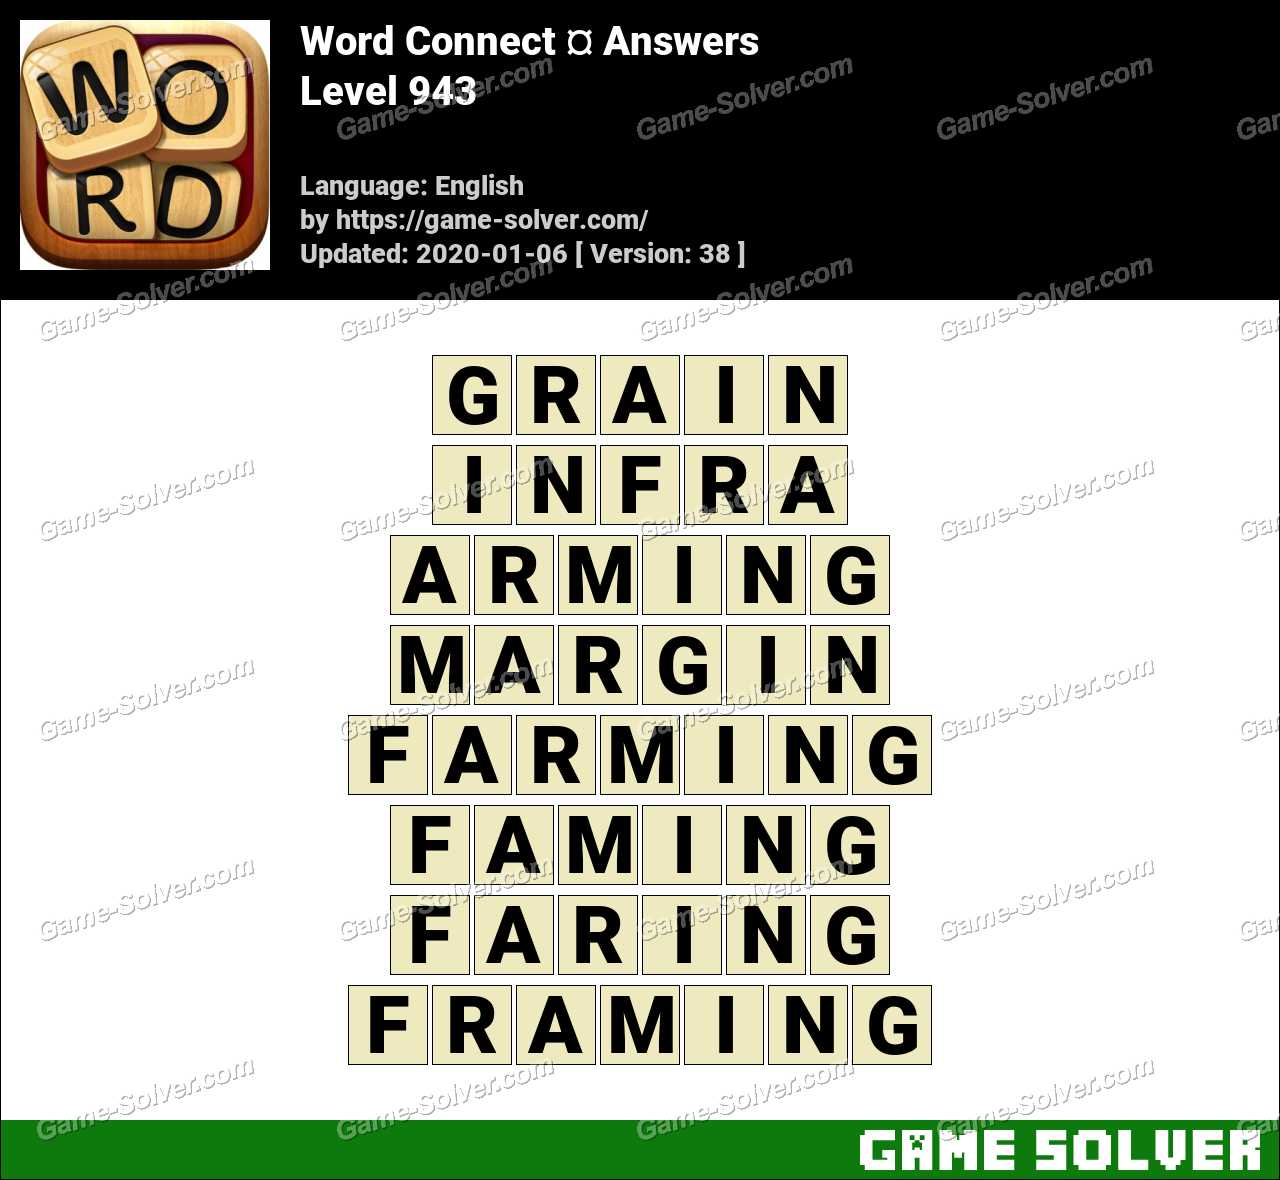 Word Connect Level 943 Answers